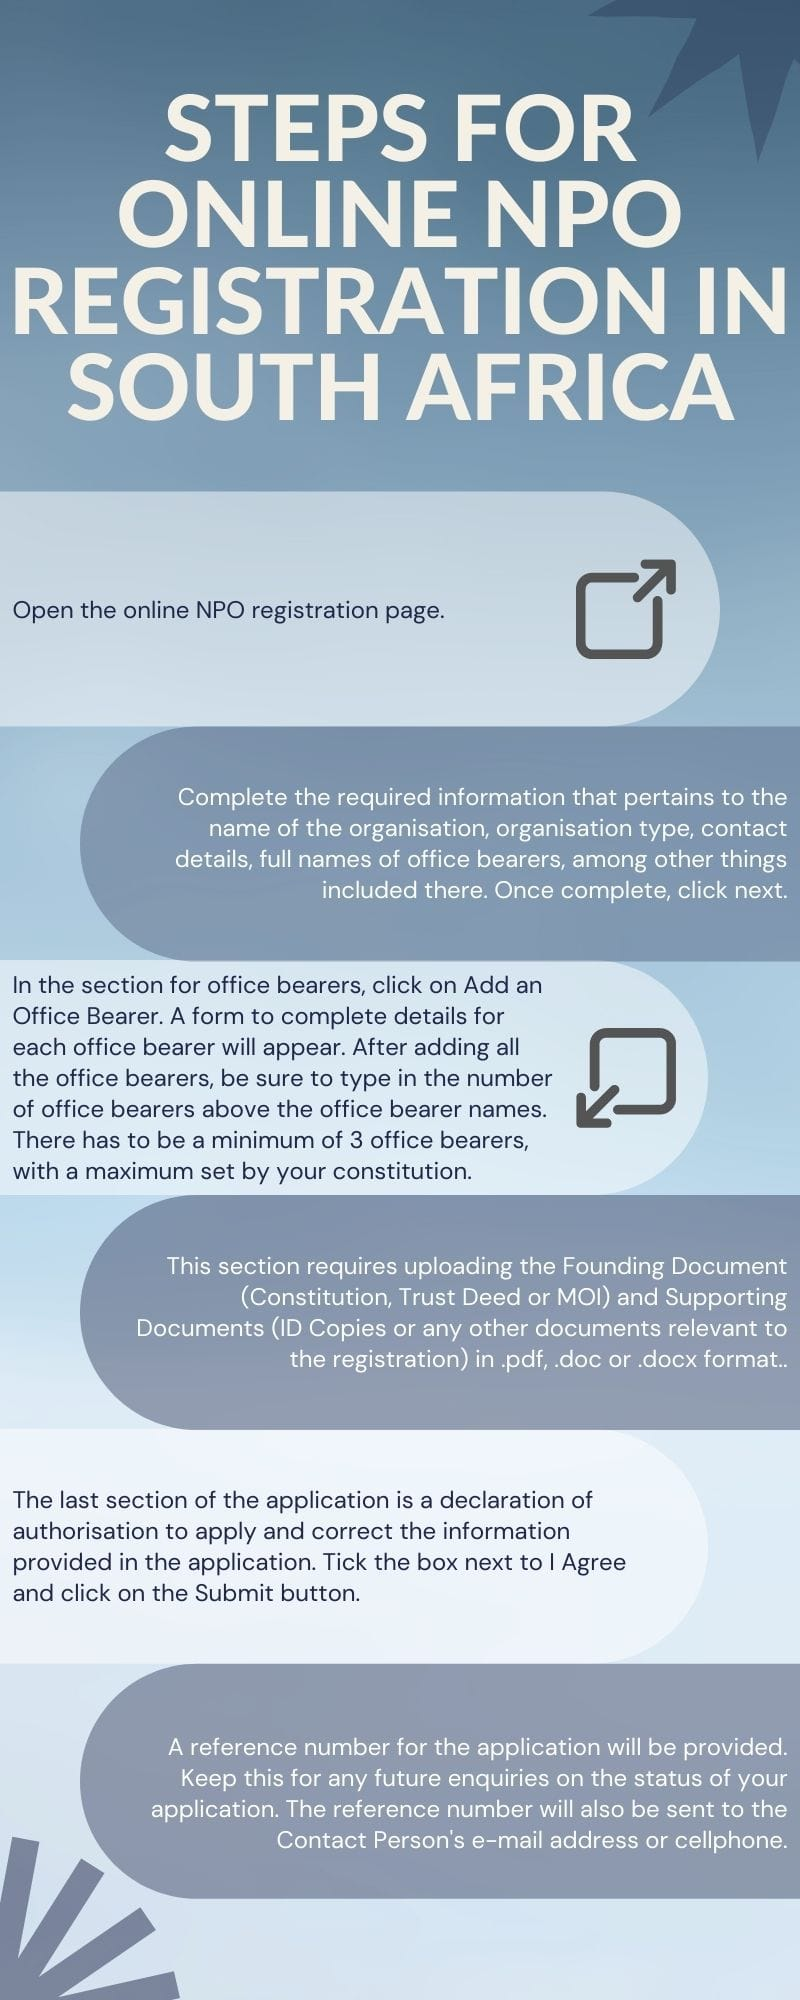 NPO registration step-by-step guide 2021